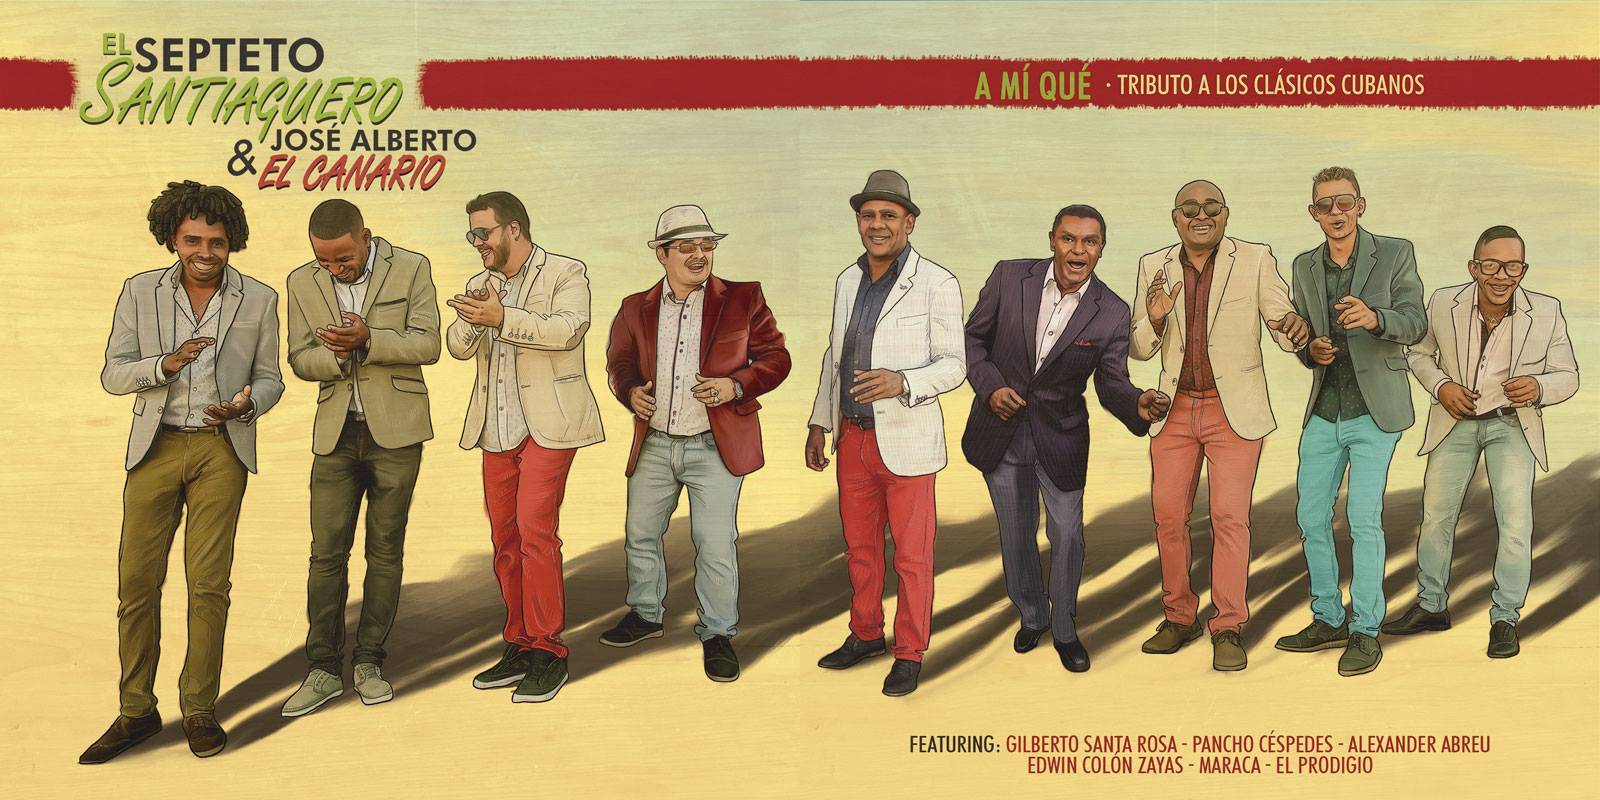 Photo: Official page of the Septeto Santiaguero